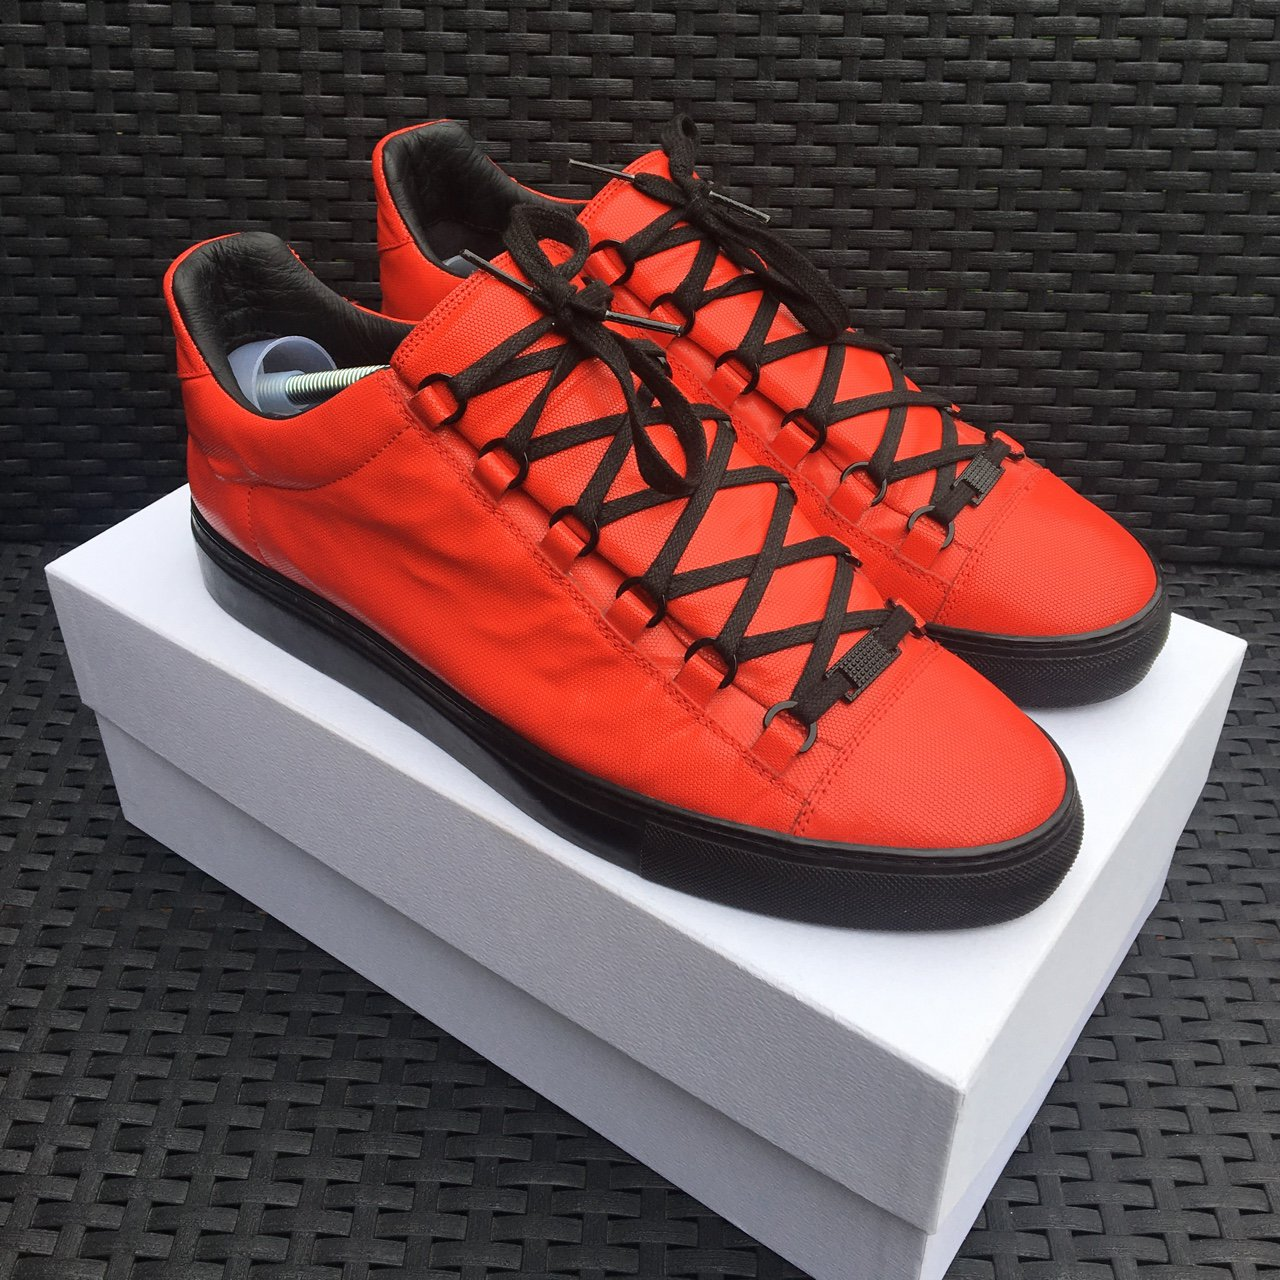 7cb5f8fb3ac3 Balenciaga arena low red and black 8 10 - No original box or - Depop